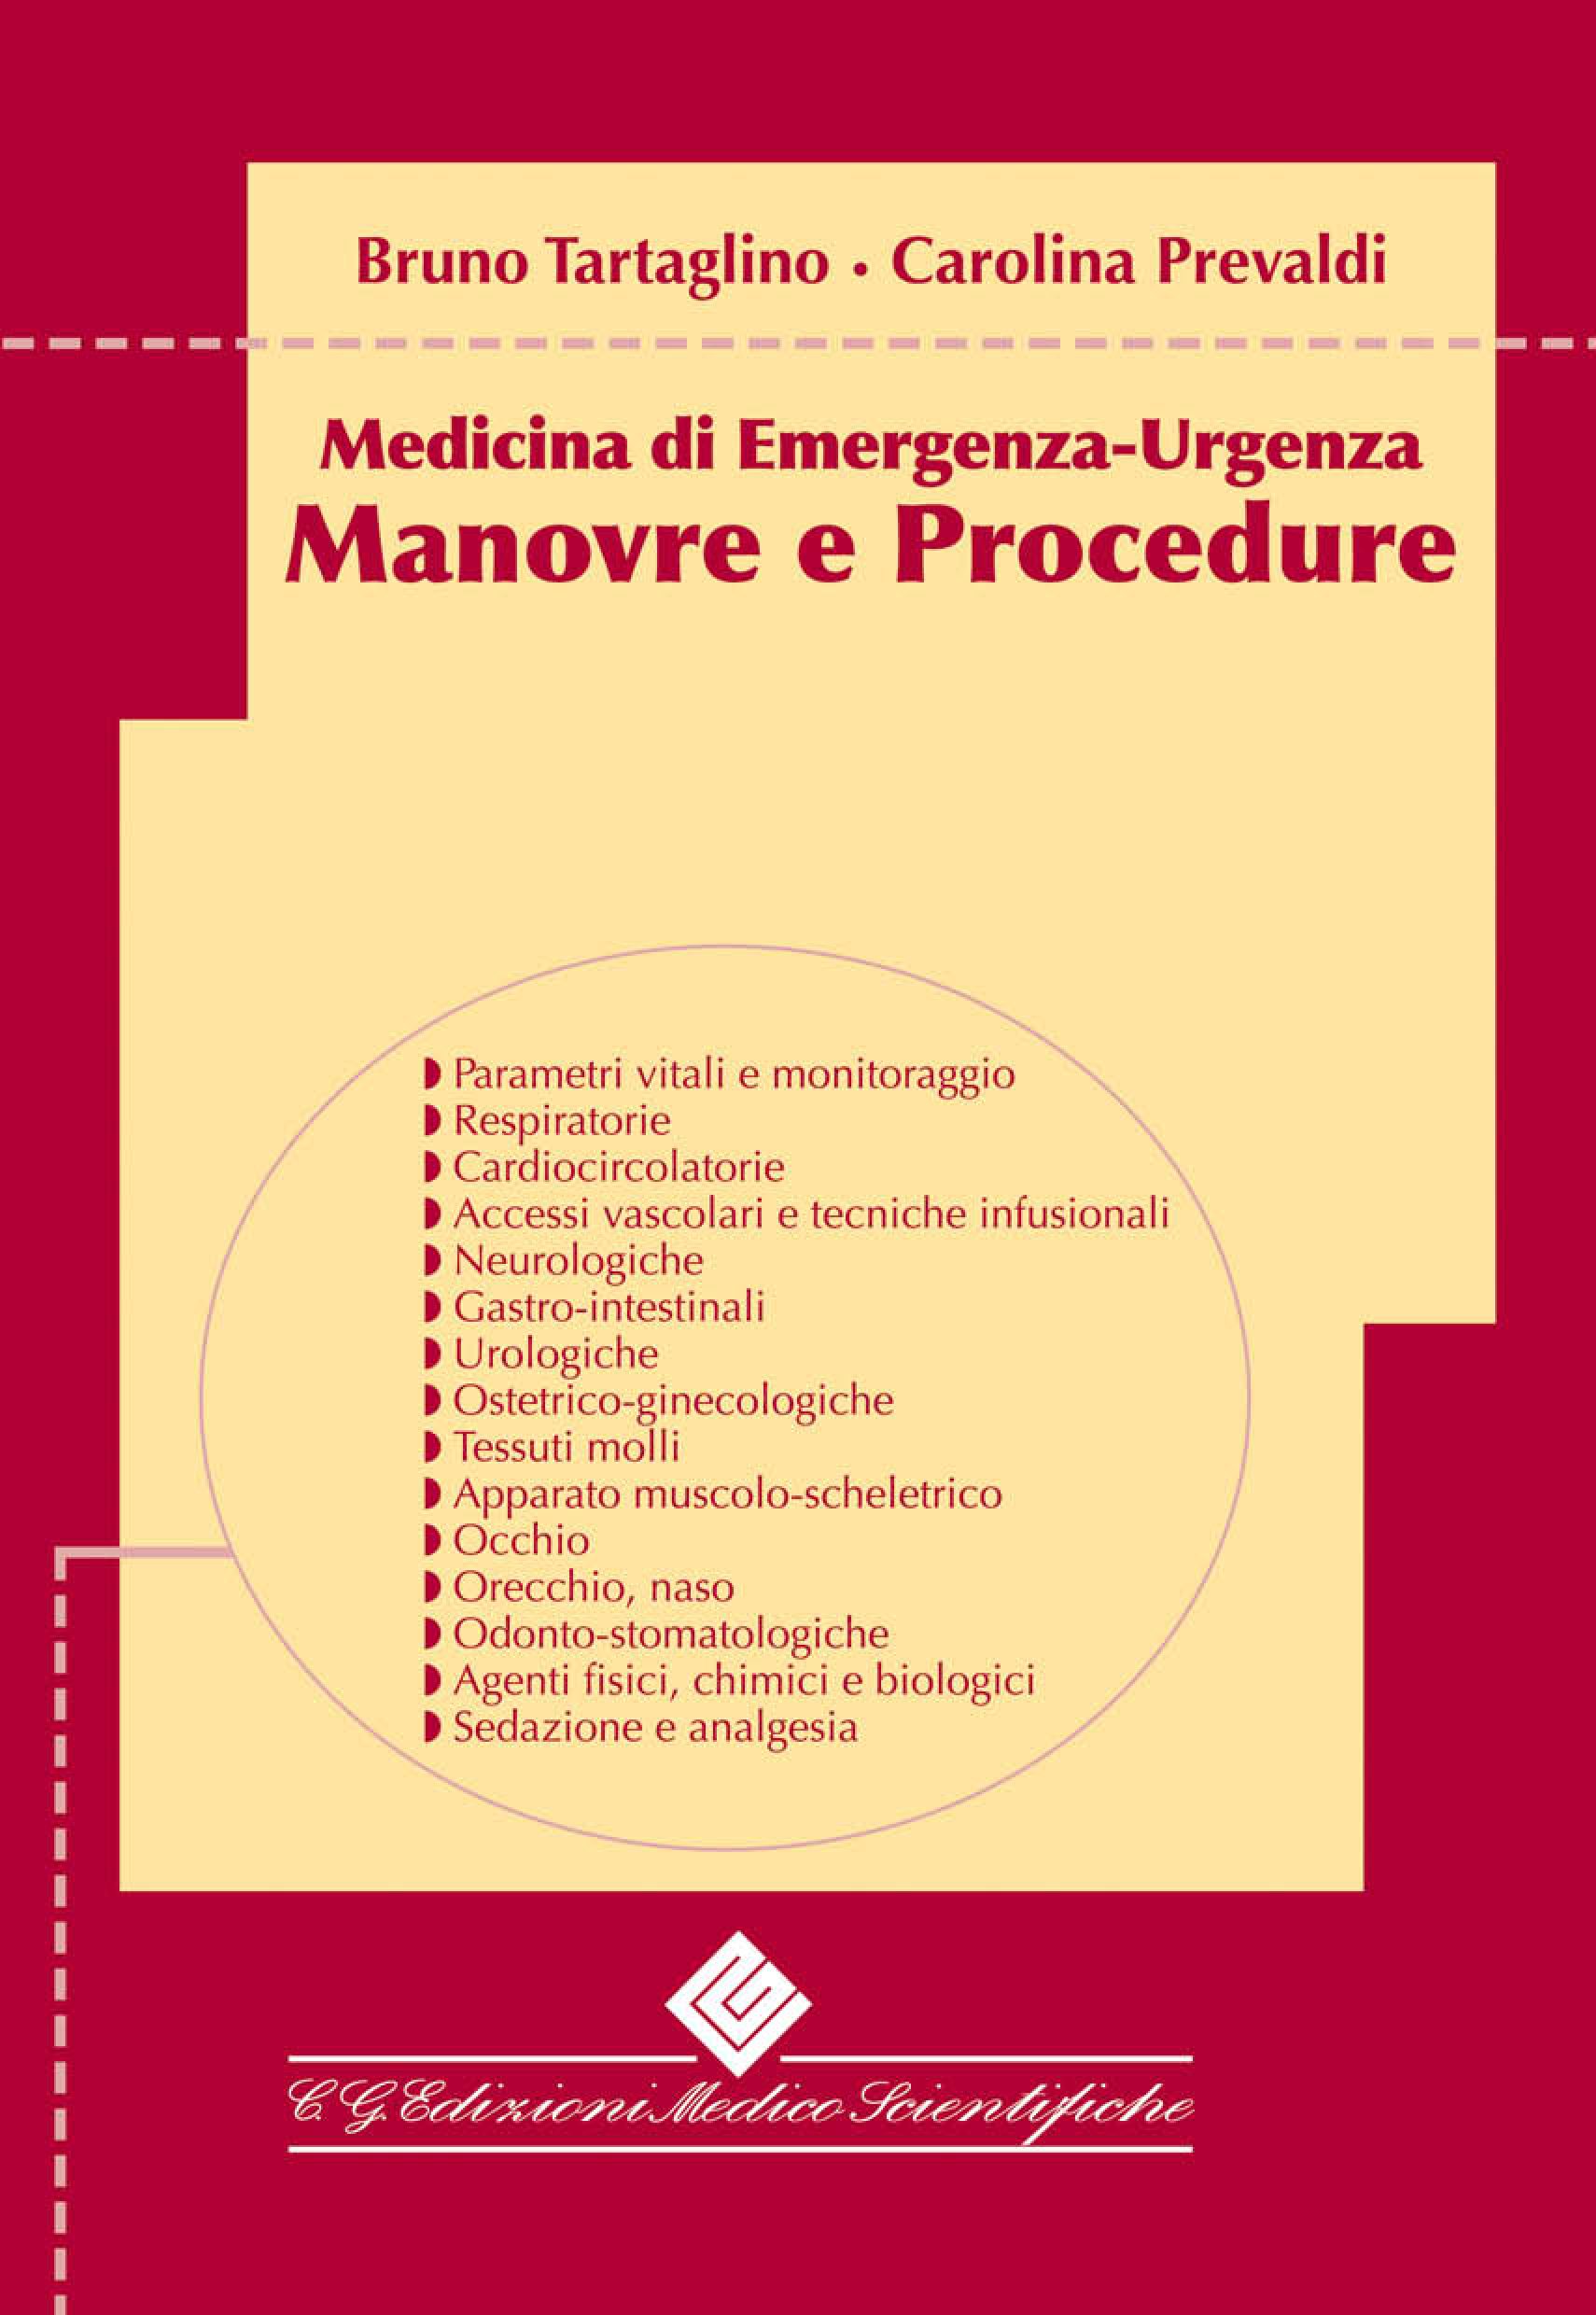 Manovre e Procedure - Medicina di Emergenza-Urgenza